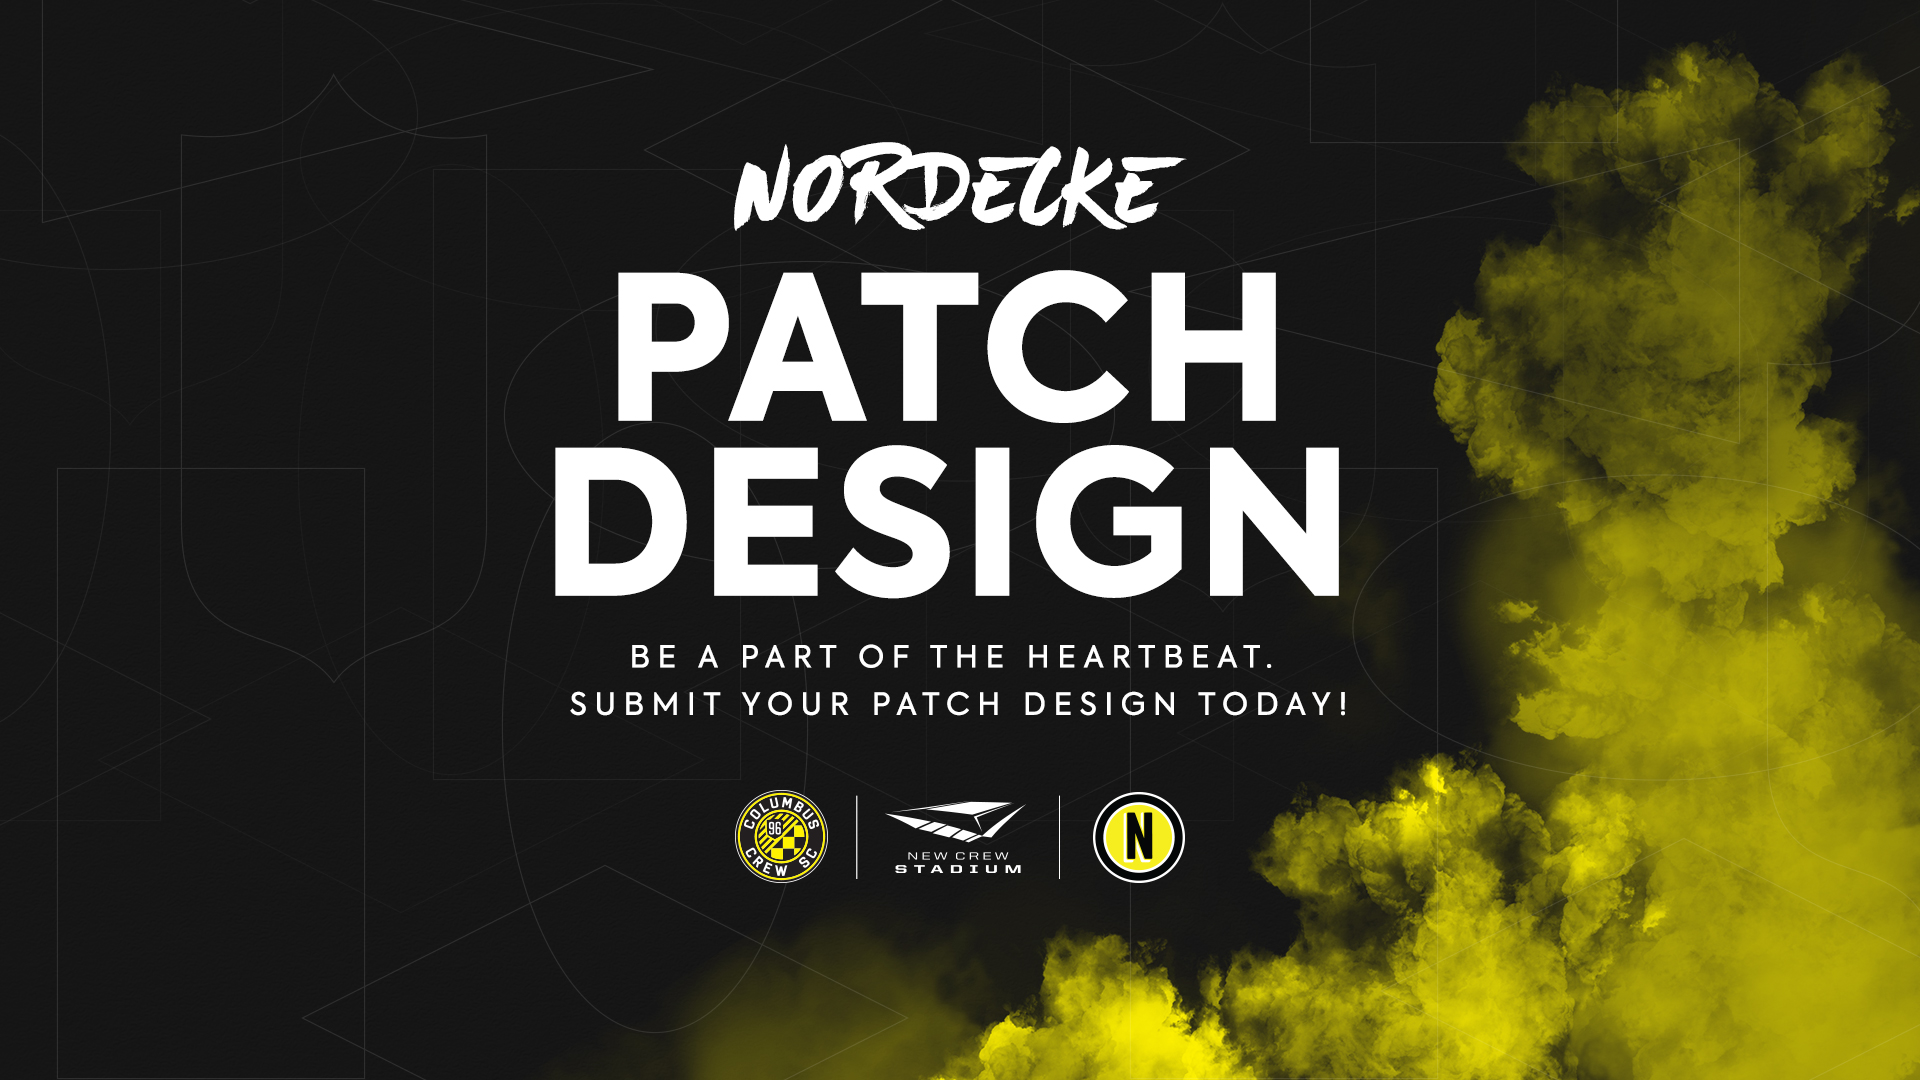 Nordecke_PatchDesign_1920x1080